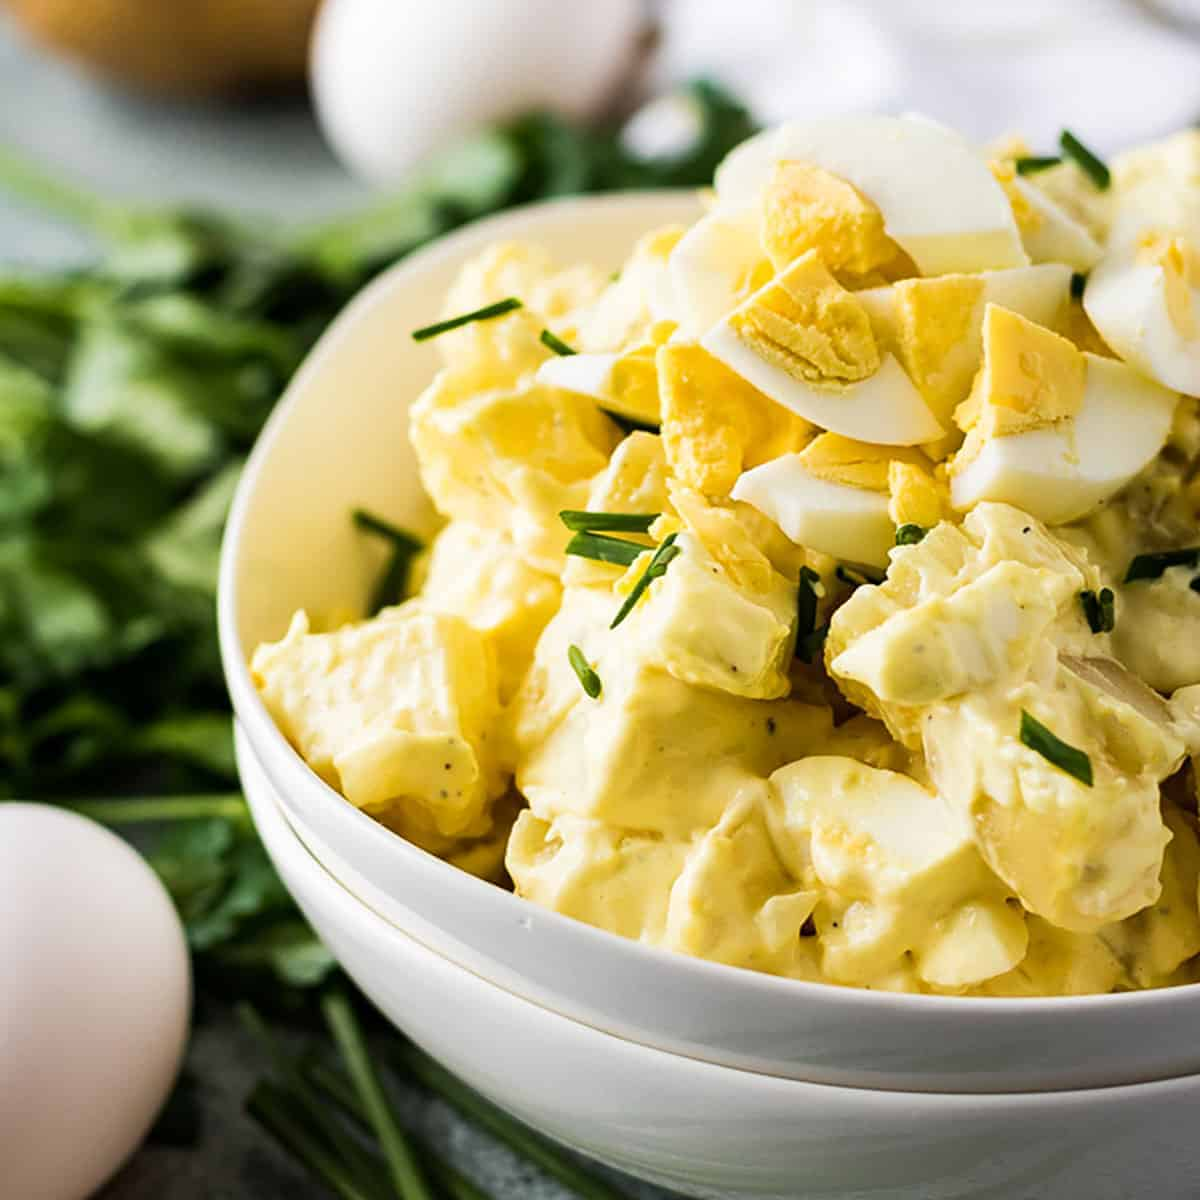 Instant Pot potato salad topped with chopped eggs and chives.